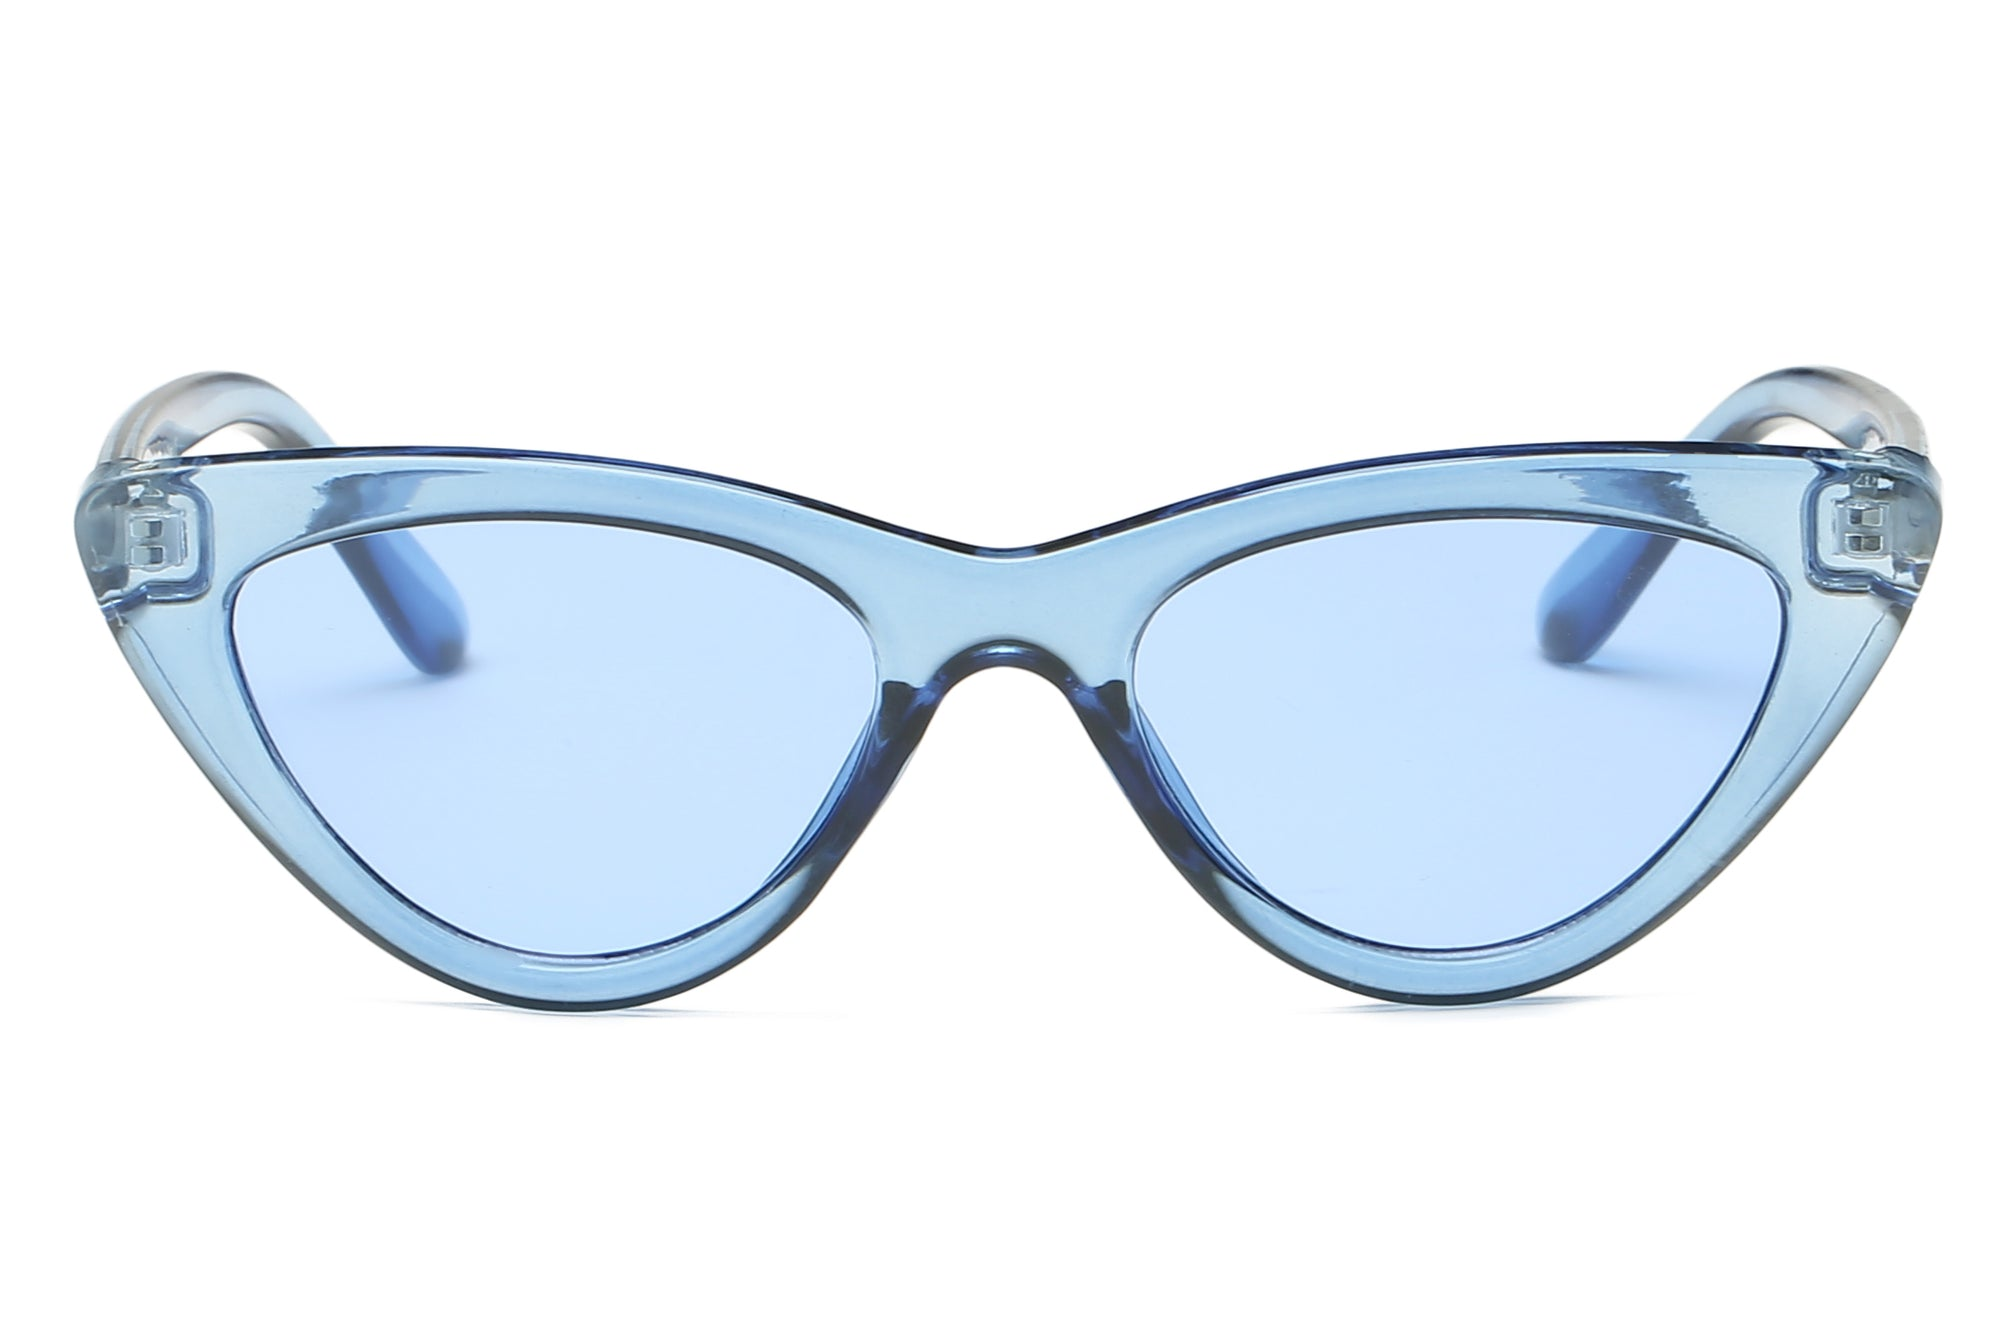 S1062 - Women Retro Cat Eye Sunglasses - Iris Fashion Inc. | Wholesale Sunglasses and Glasses